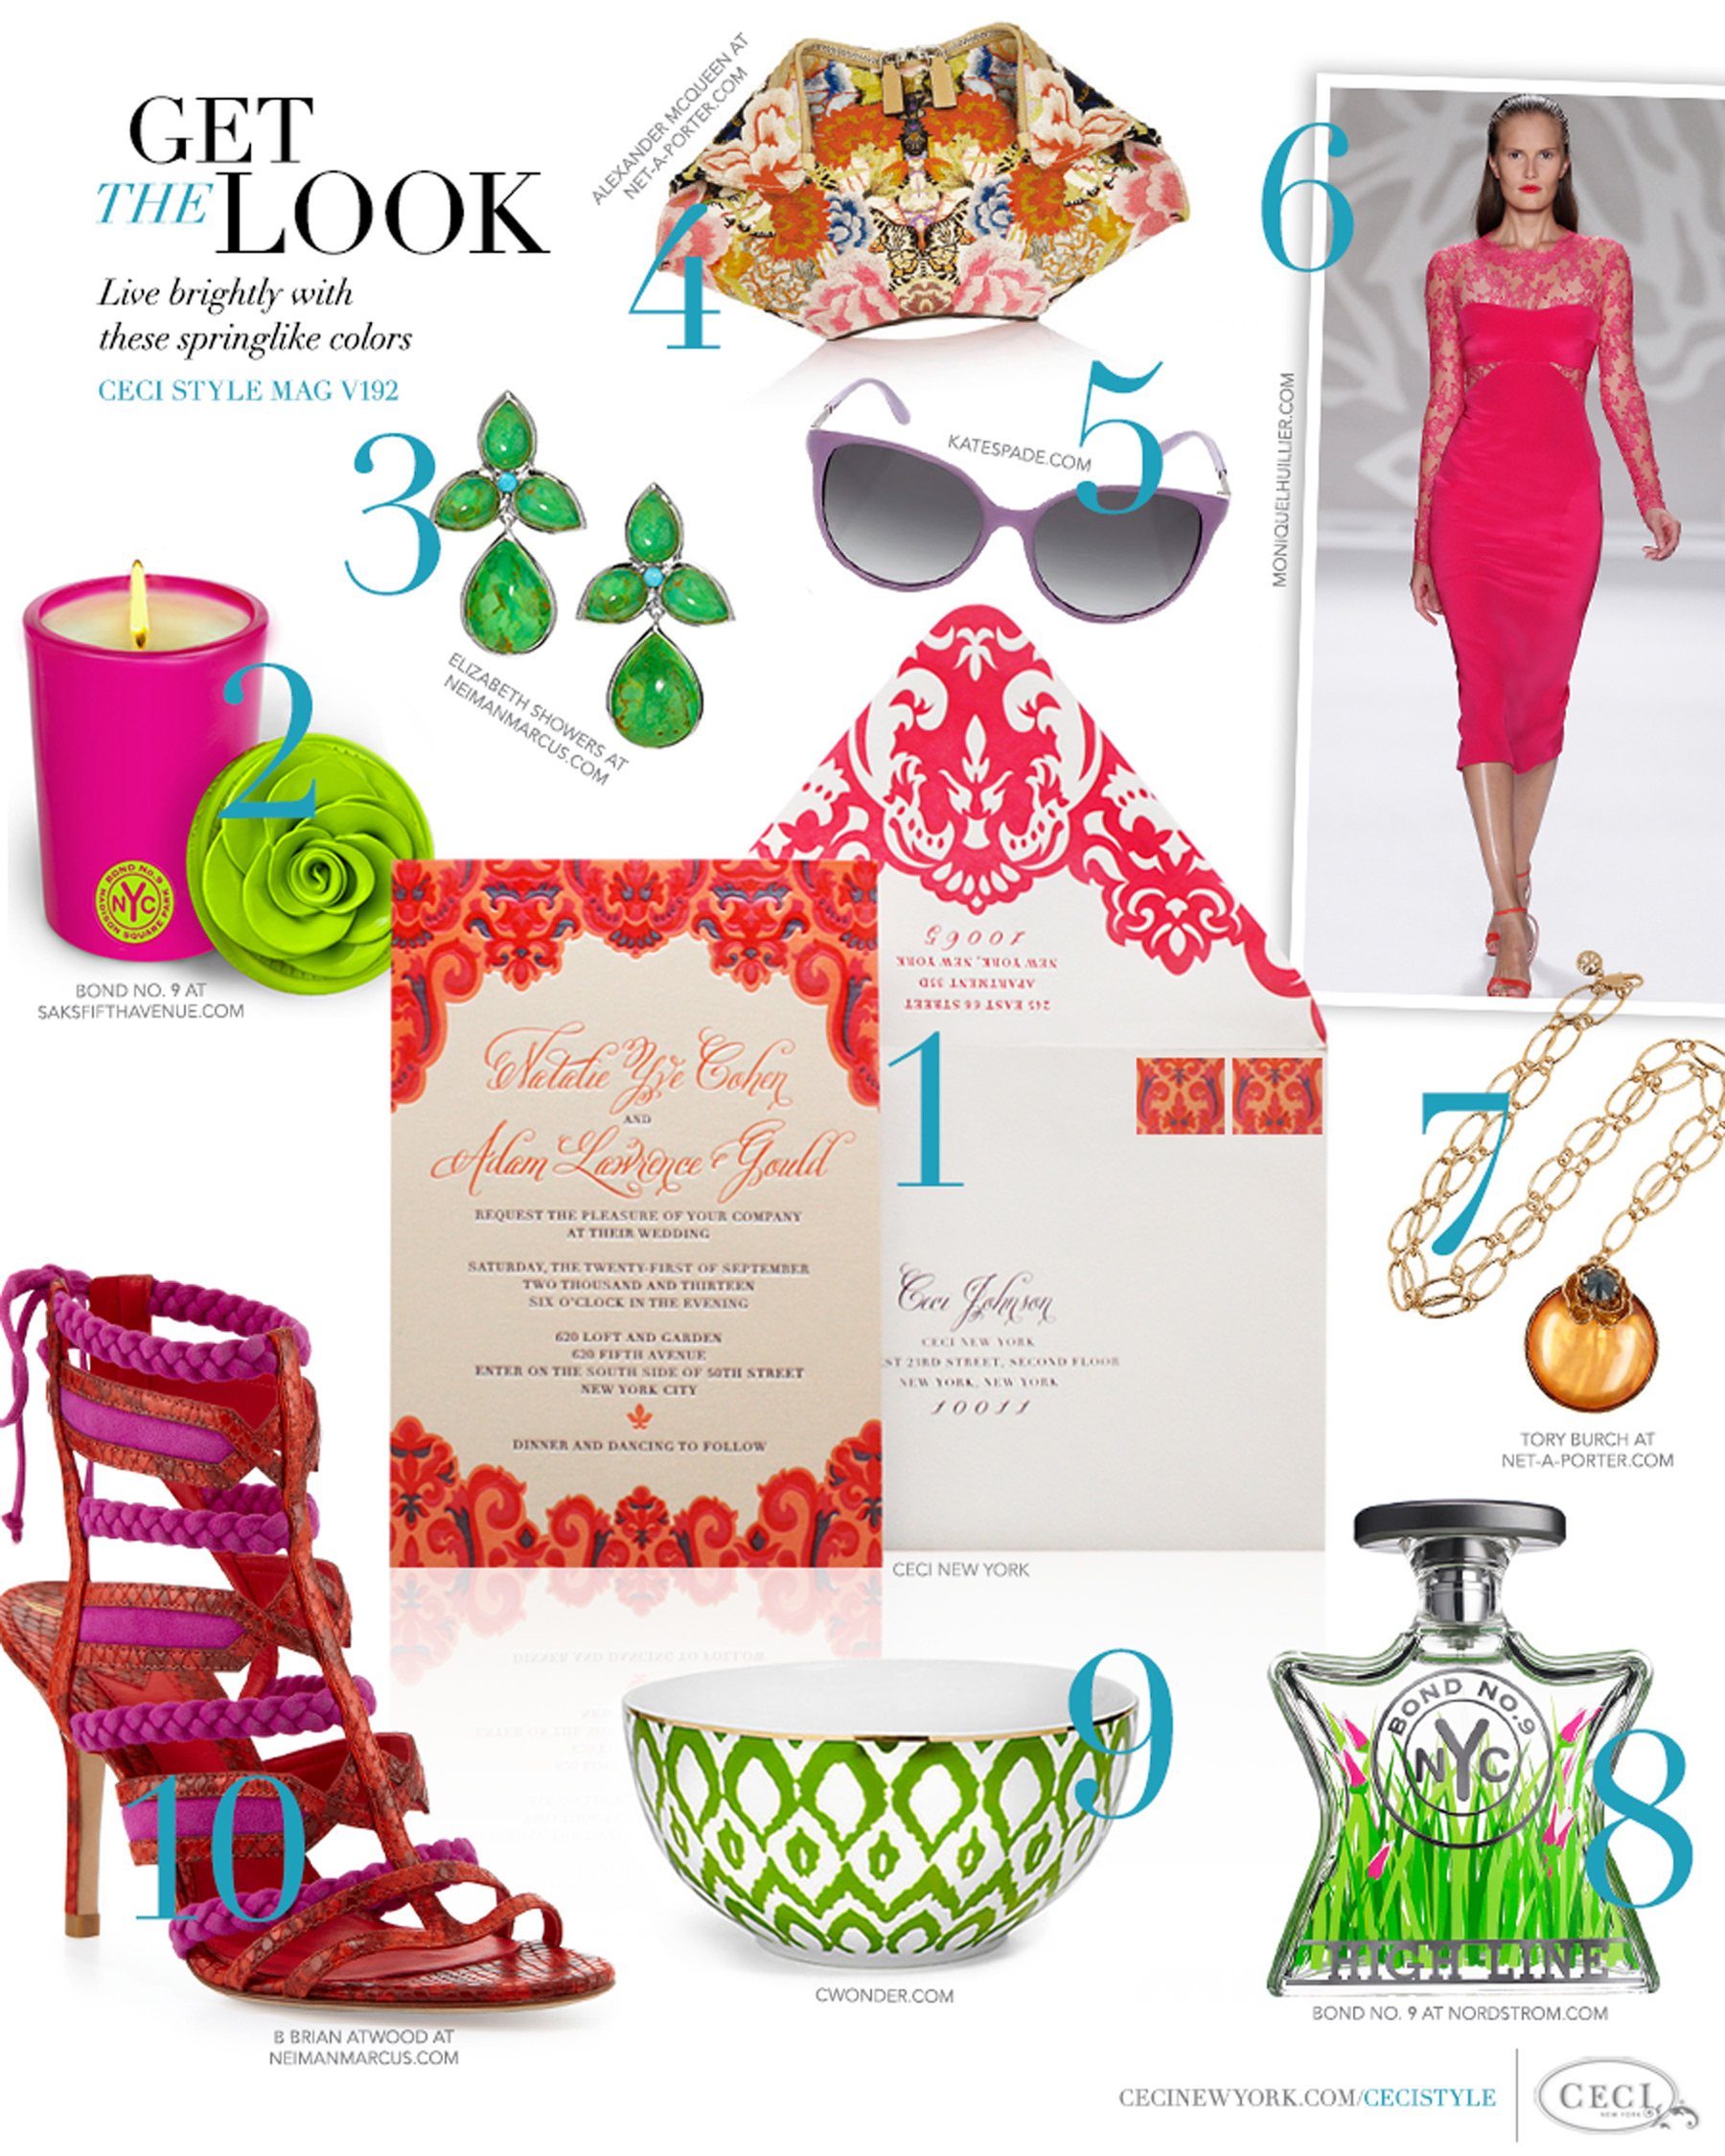 CeciStyle Magazine v192: Get The Look - Stop and Smell the Roses - Live brightly with these springlike colors - Luxury Wedding Invitations by Ceci New York - ceci new york, invitaitons, elizabeth showers, jewelry, bond no. 9, home goods, katespade.com, fashion, alexander mcqueen, handbags, moniquelhuillier.com, tory burch, cwonder.com, b. brian atwood, shoes